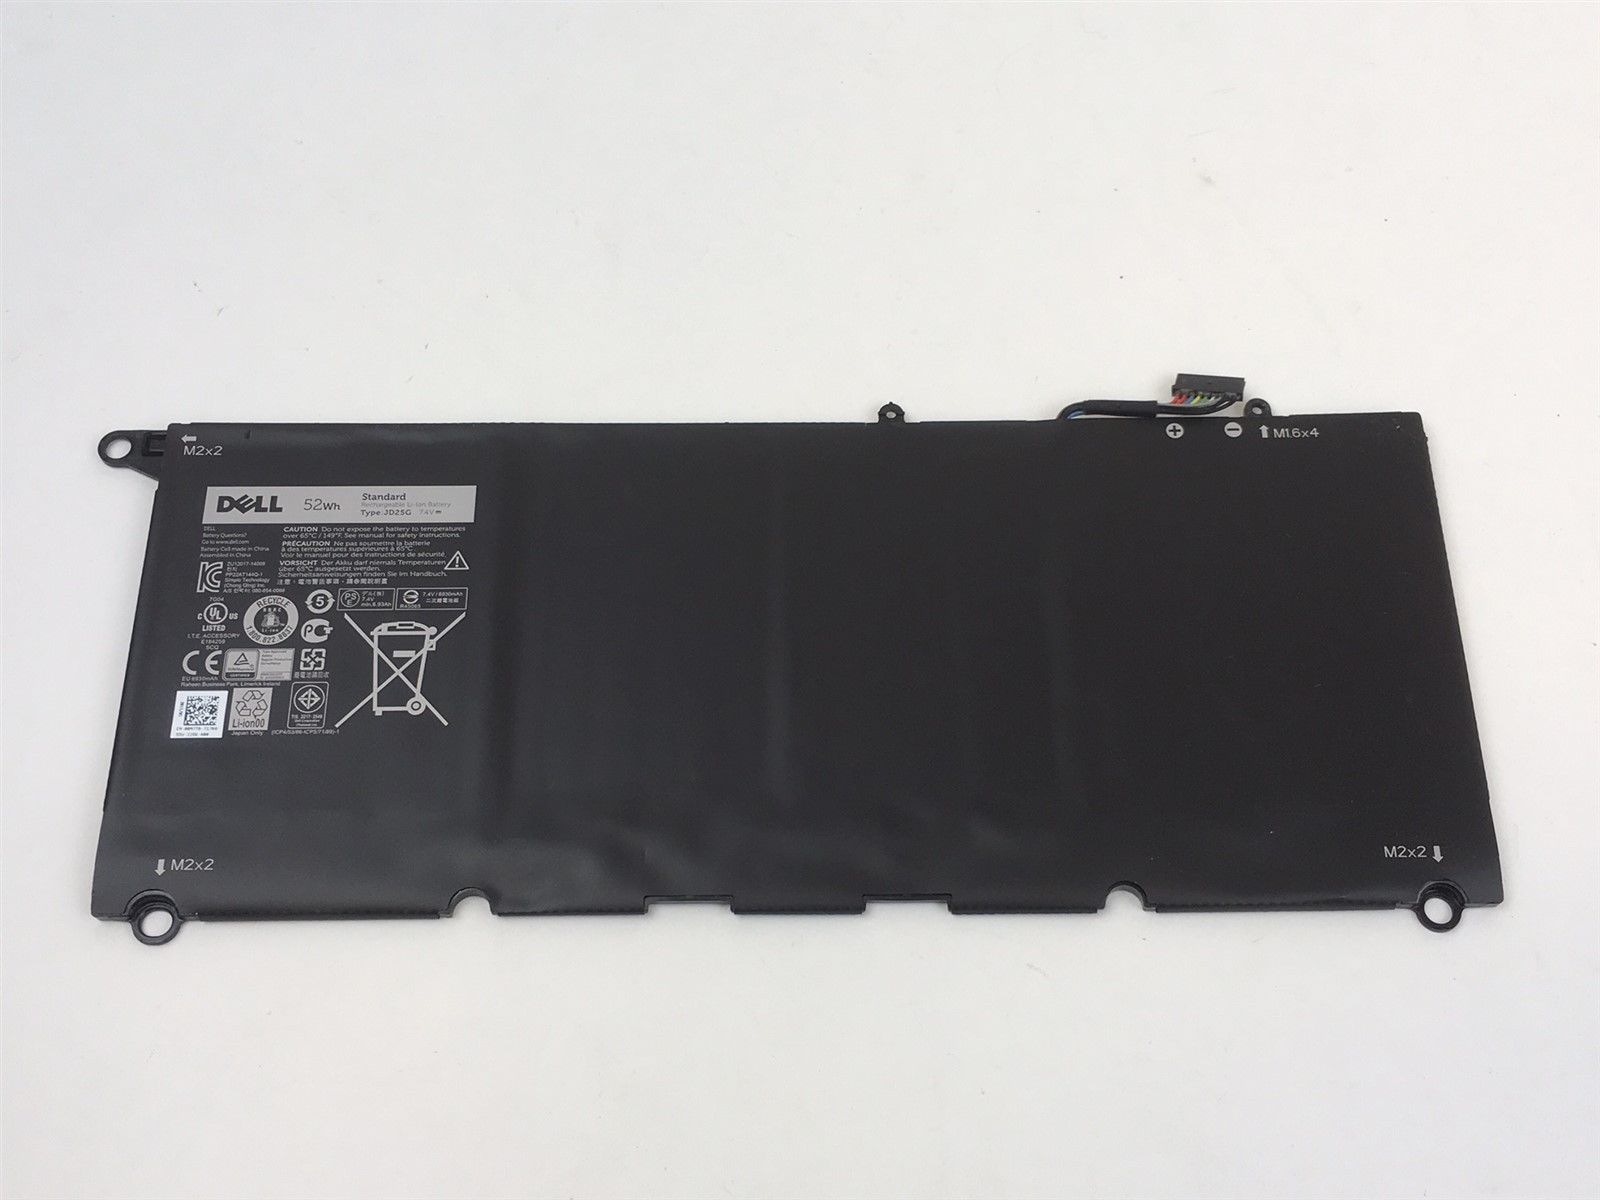 Dell XPS 13 (9343) 7.4V 52Whr Laptop Battery 13D-9343-1808T 0N7T6 00N7T6